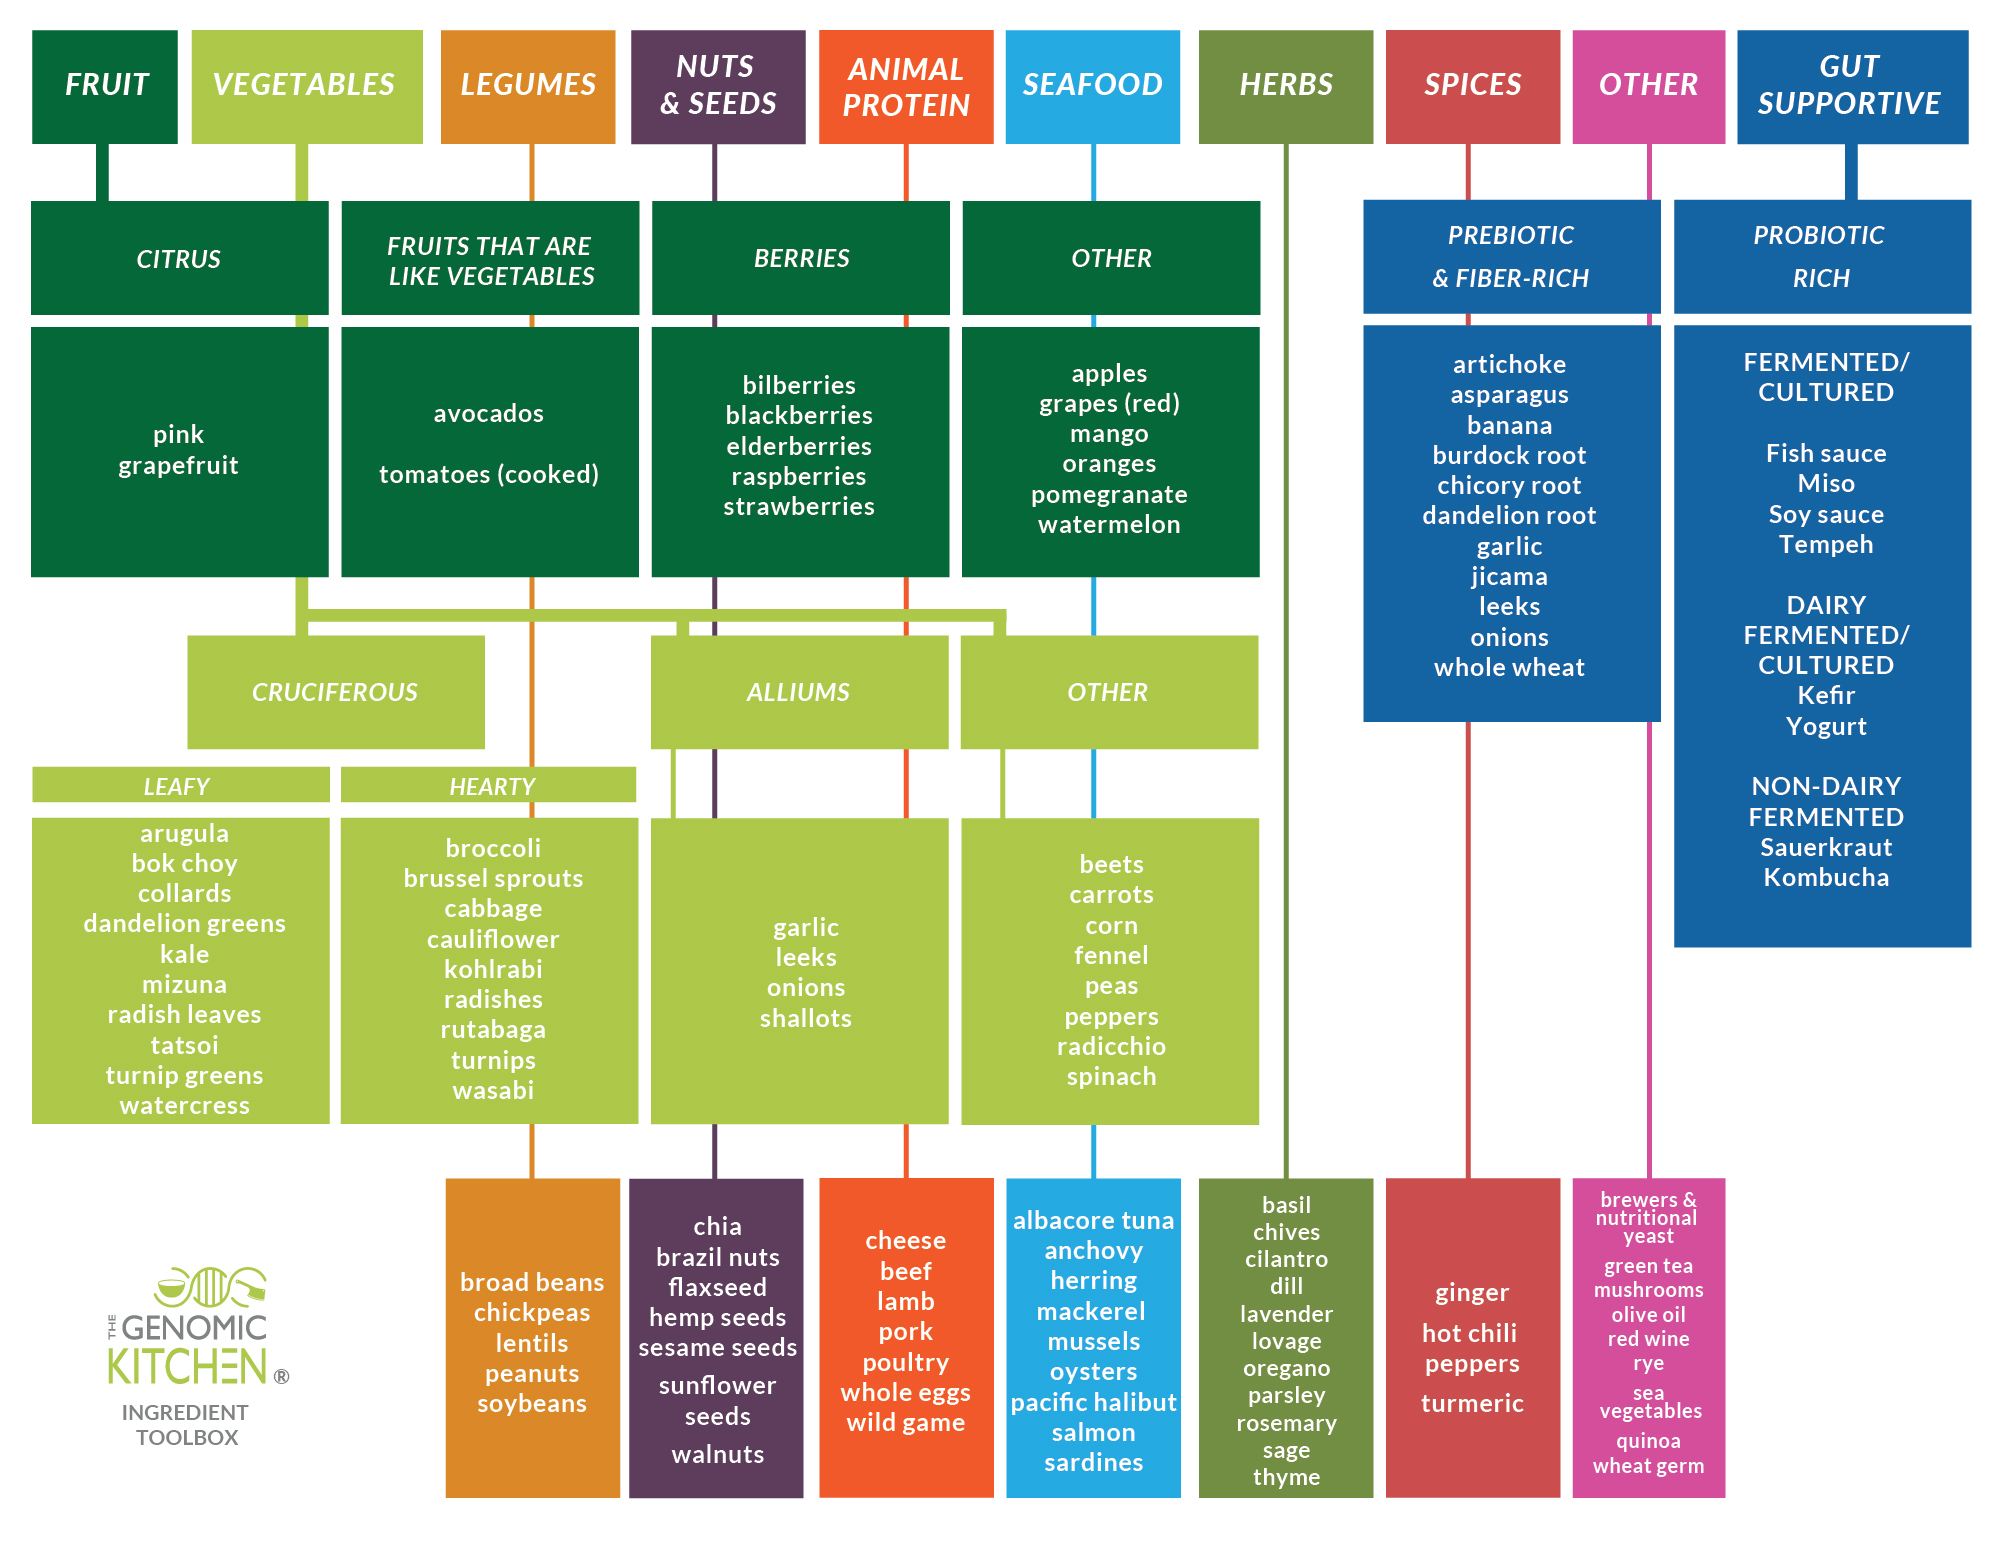 The Genomic Kitchen Ingredient Toolbox - Organized by food groups